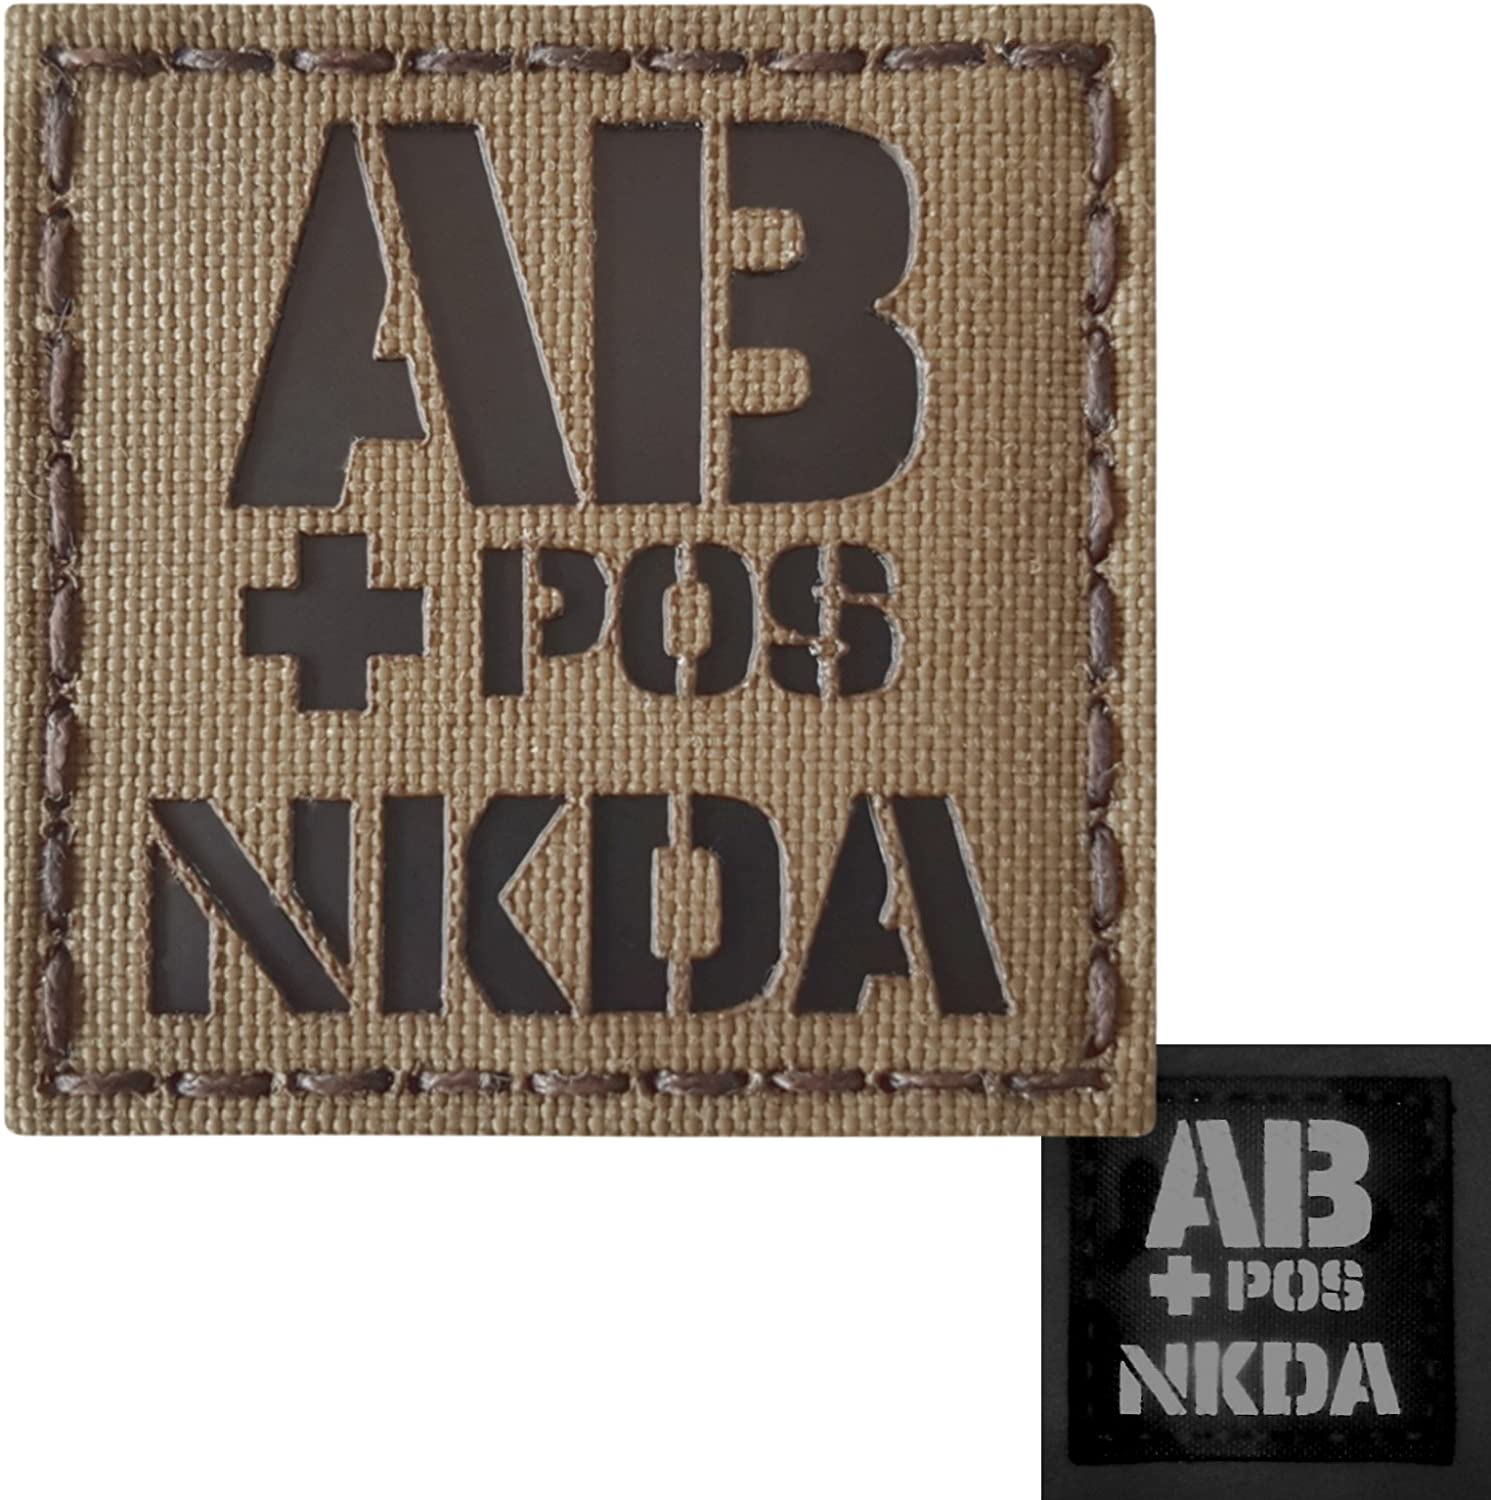 Blood Type 2x2 Arid Tan Tactical Morale Touch Fastener Patch IR A-TACS AU OPOS NKDA O